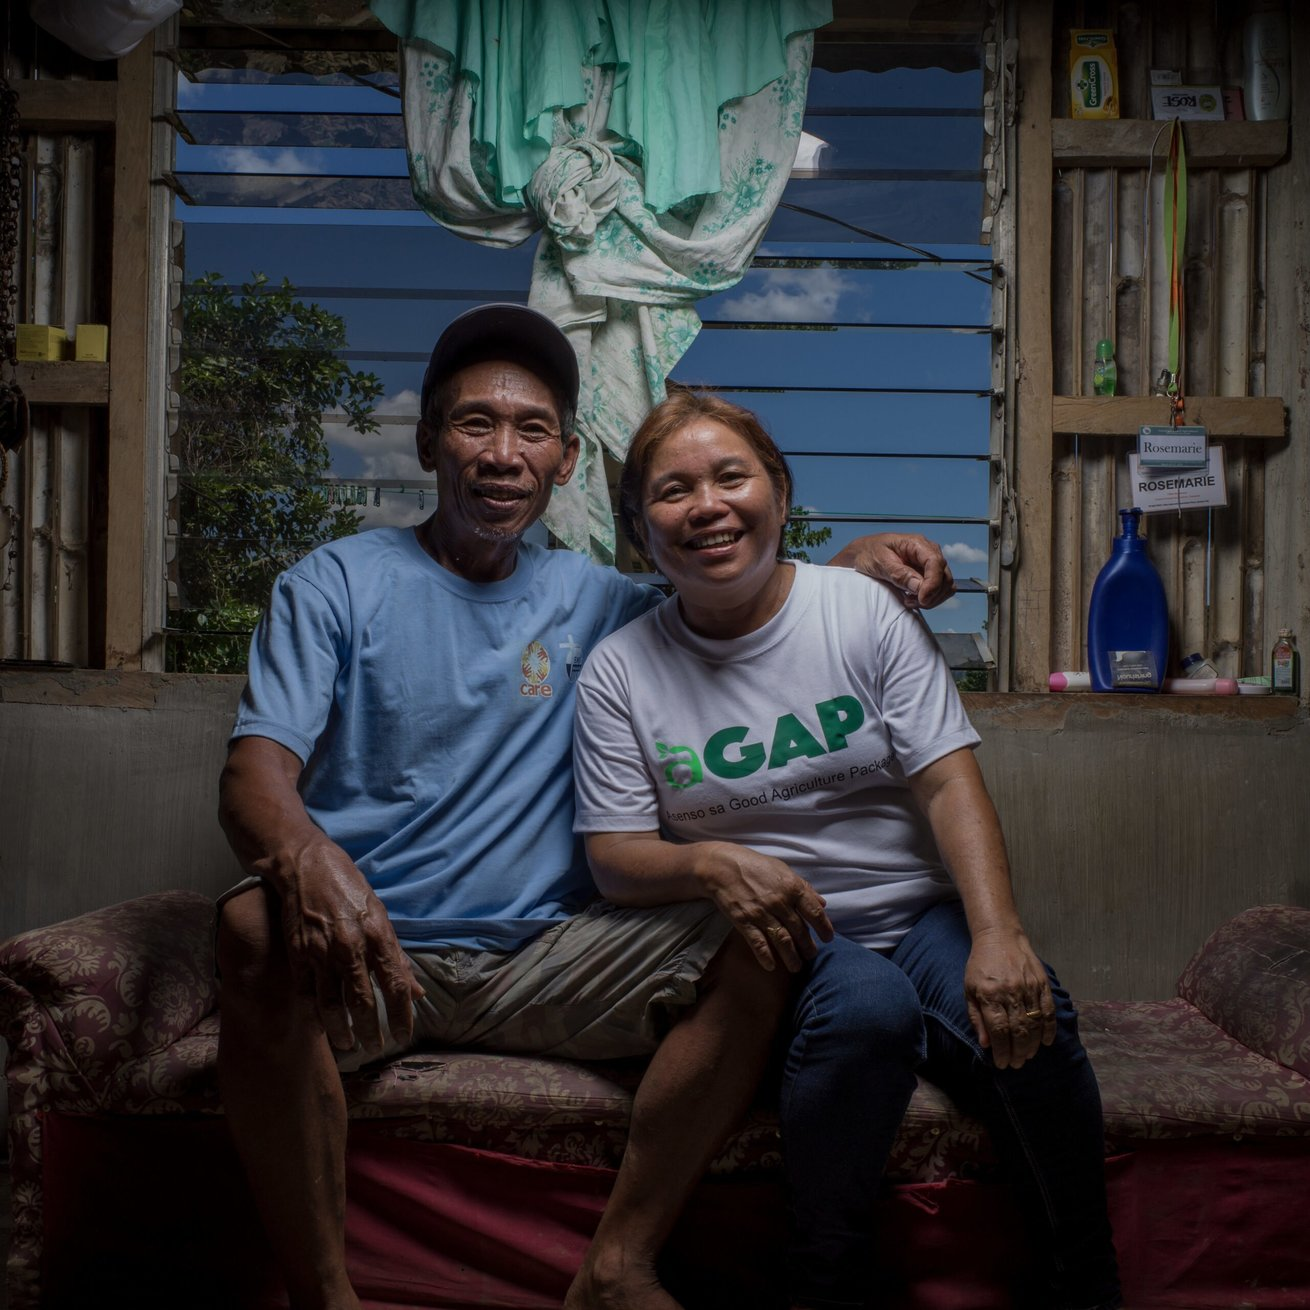 Rosemarie Arante, 48, is a farmer who's house and crops were destroyed when her community was decimated by Typhon Yolanda. She lost everything and has since rebuilt with the help of CARE and the aGAP project. Today she is a story off success